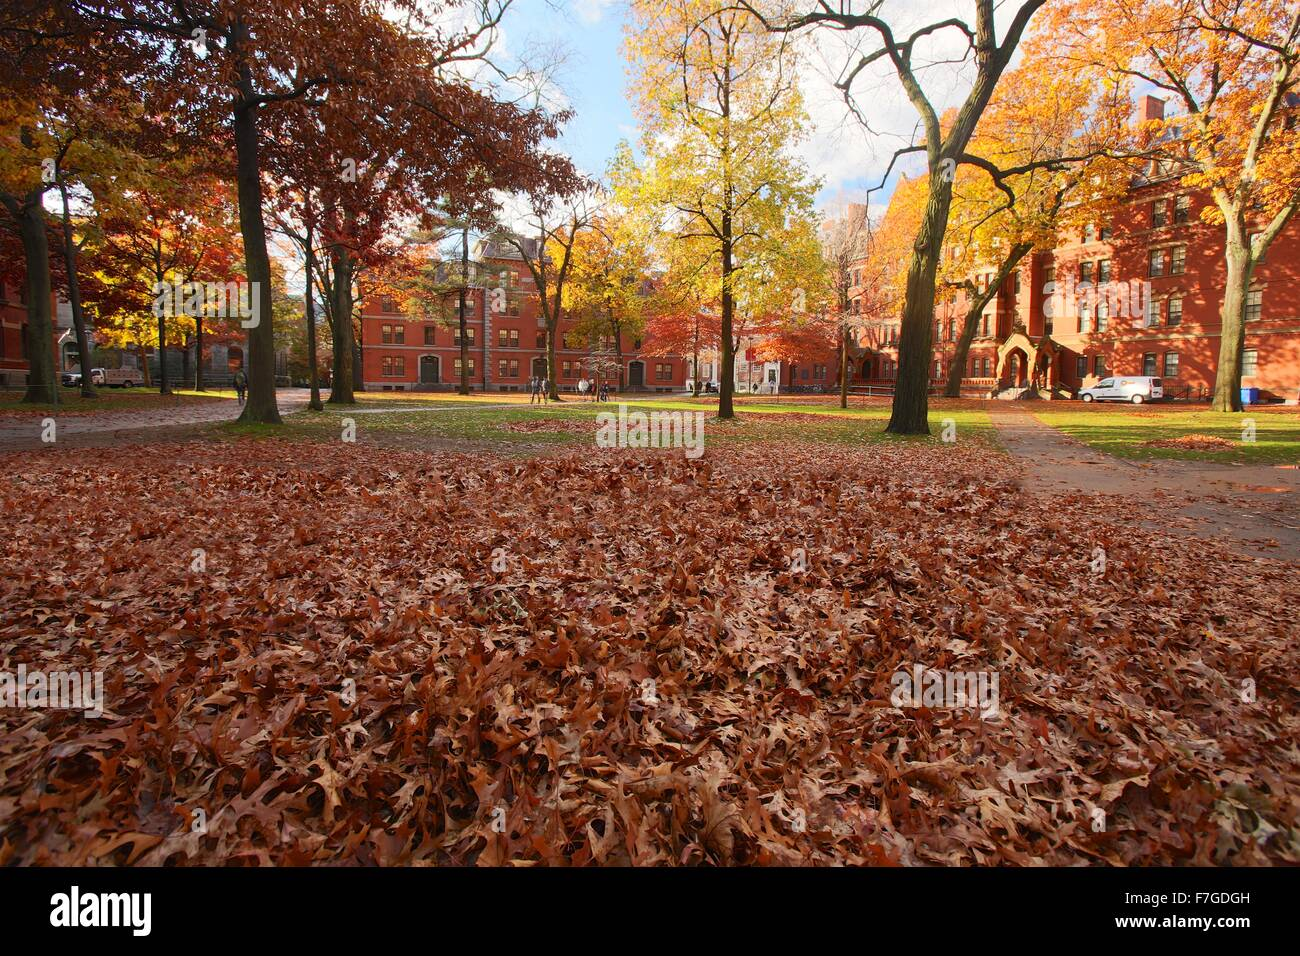 Autumn fallen leaves in Harvard Yard at Harvard University in Cambridge, Massachusetts - Stock Image